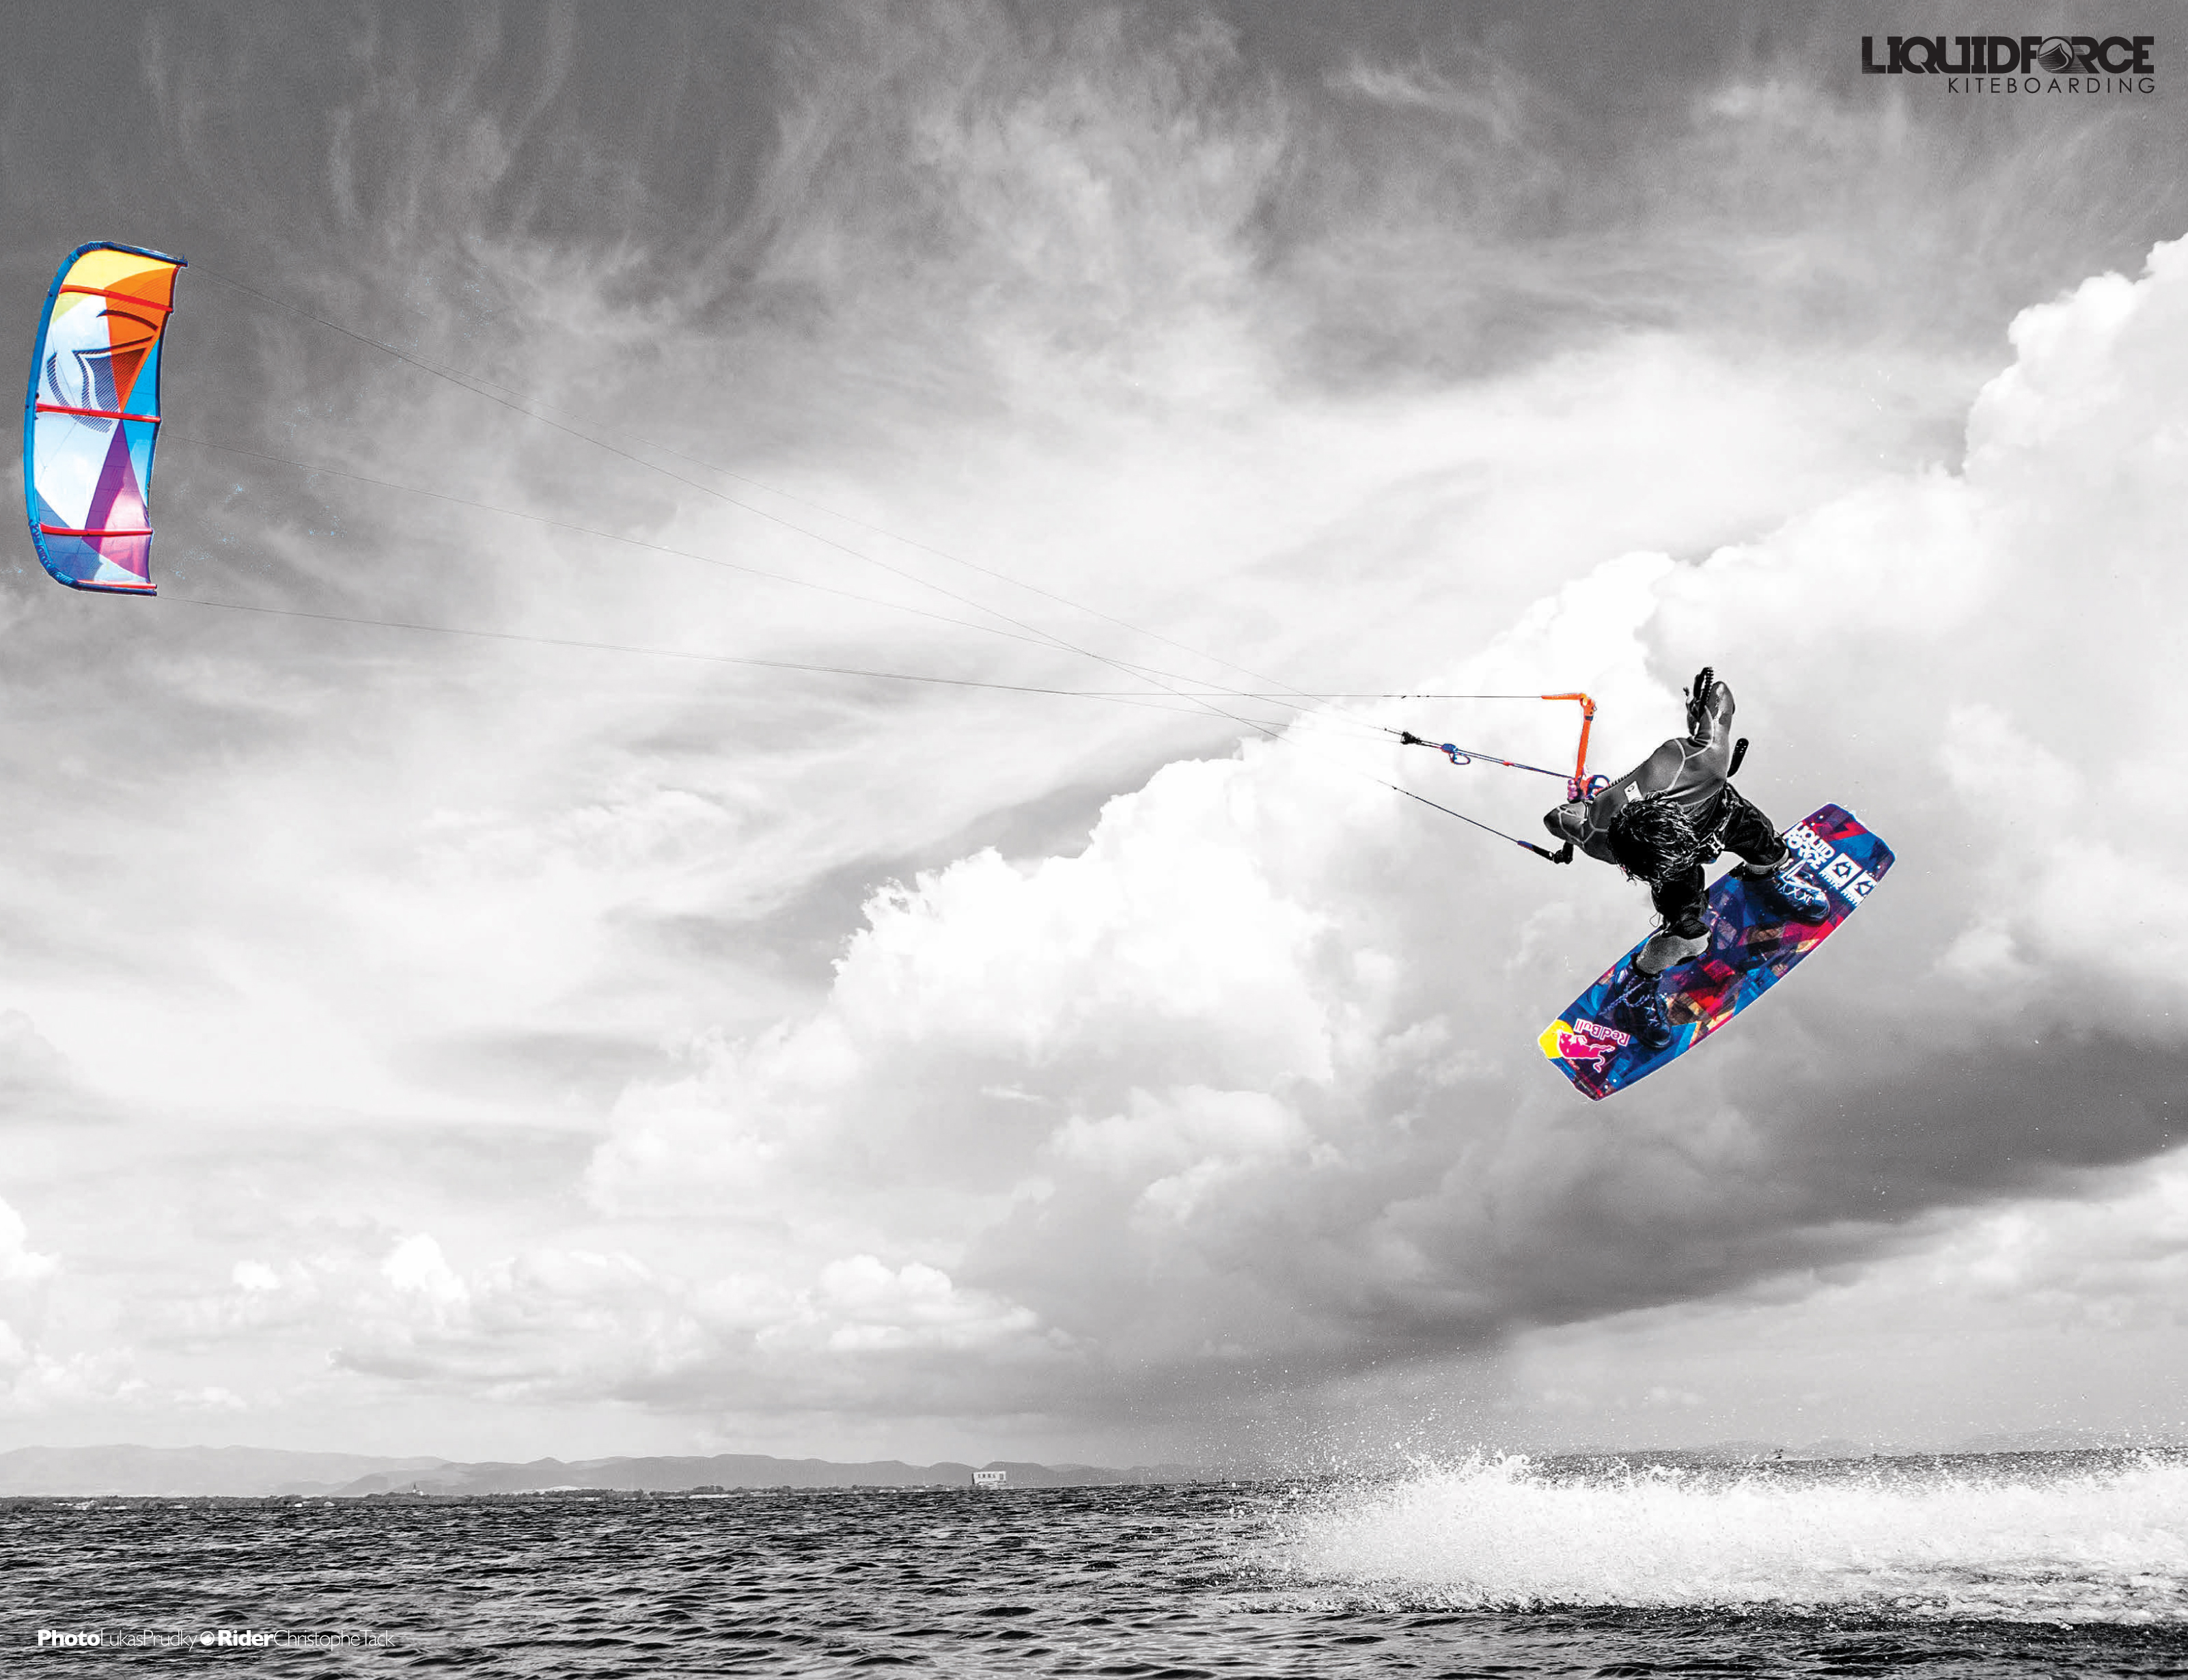 kitesurf wallpaper image - Christophe Tack on the 2015 Liquid Force HIFI-X kite and element kiteboard during a handle pass  - in resolution: Original 3203 X 2459